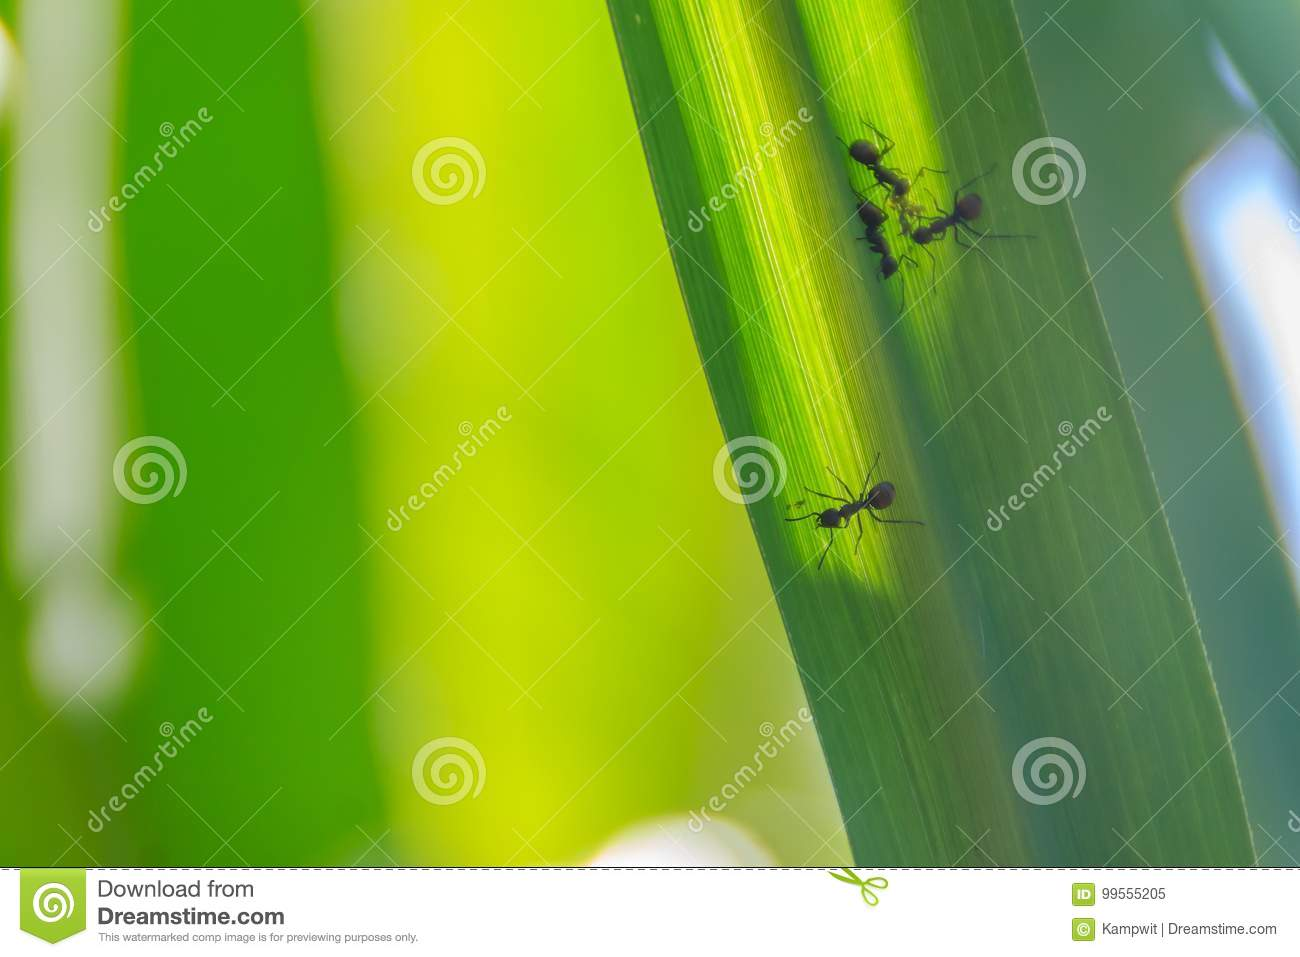 Green sugarcane leaf background with black small ants and select